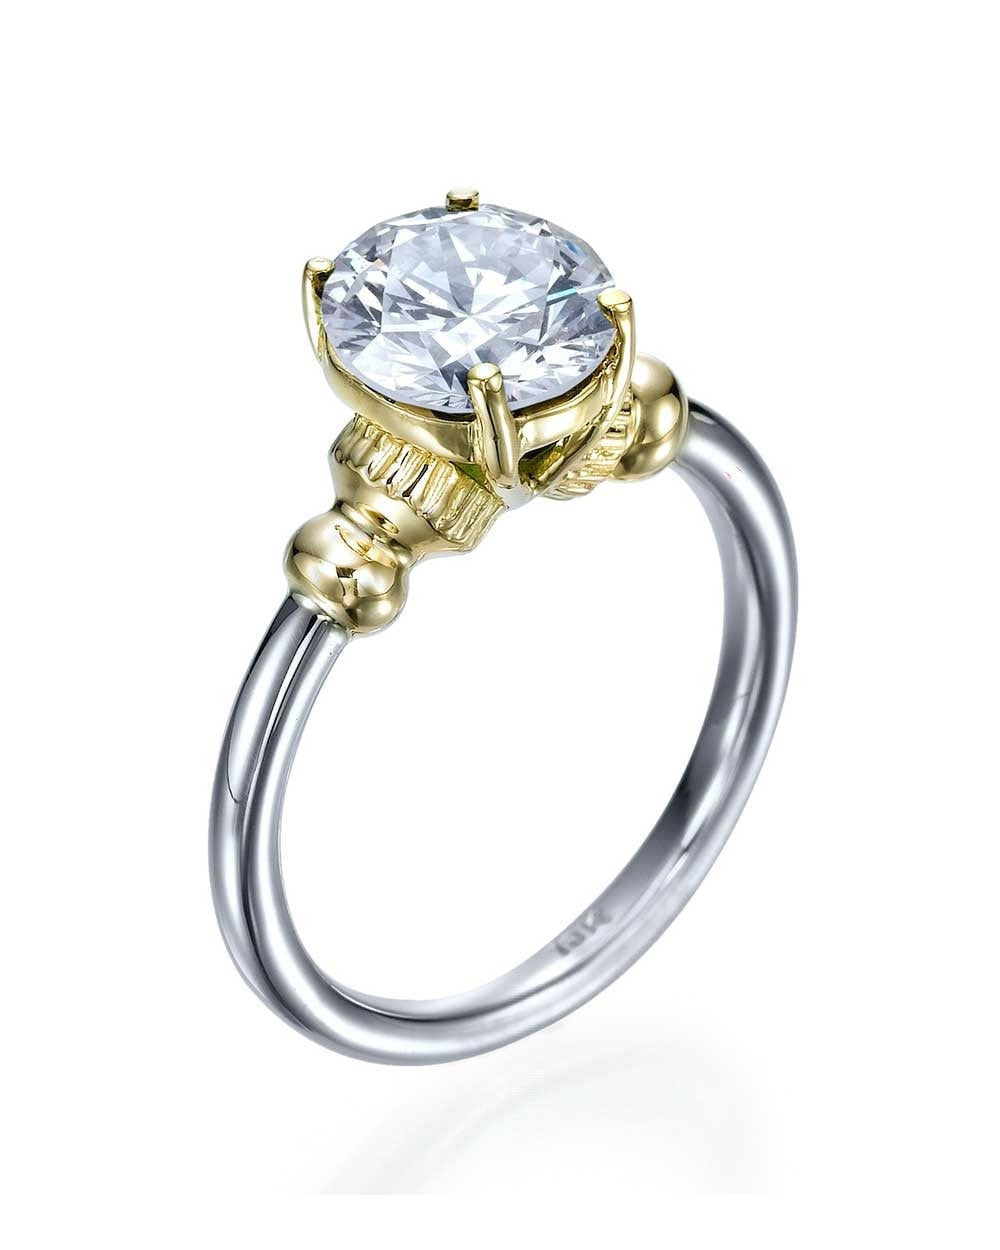 topic a resetting i id was solitaire before with time safer it prong hopefully thing to my has been like diamond one opinions prongs loose feel but rings engagement classic